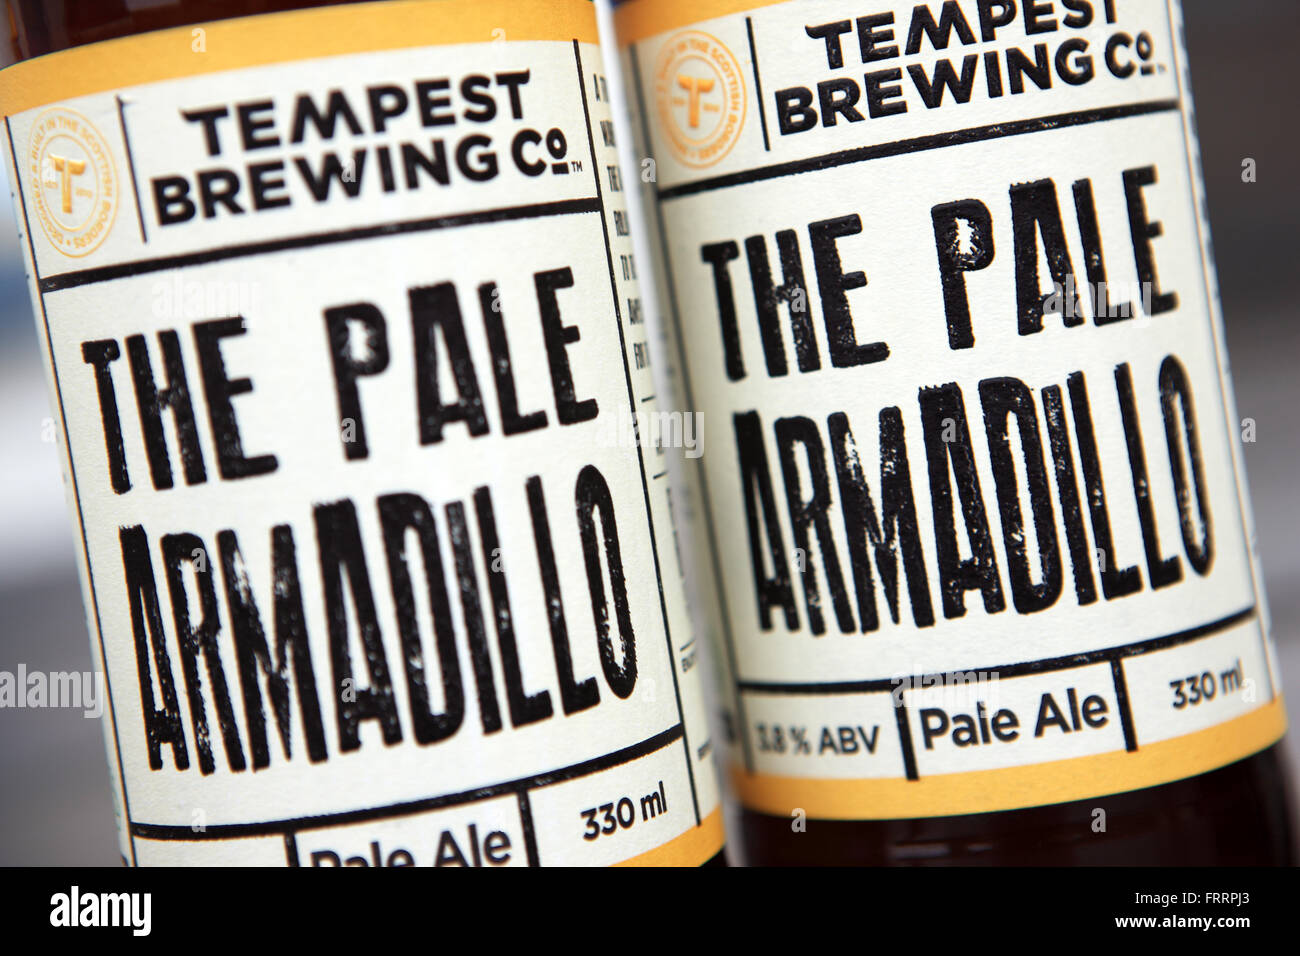 Pale Ale, The Pale Armadillo, by Tempest Brewing Co who produce craft beers in the Scottish Borders - Stock Image